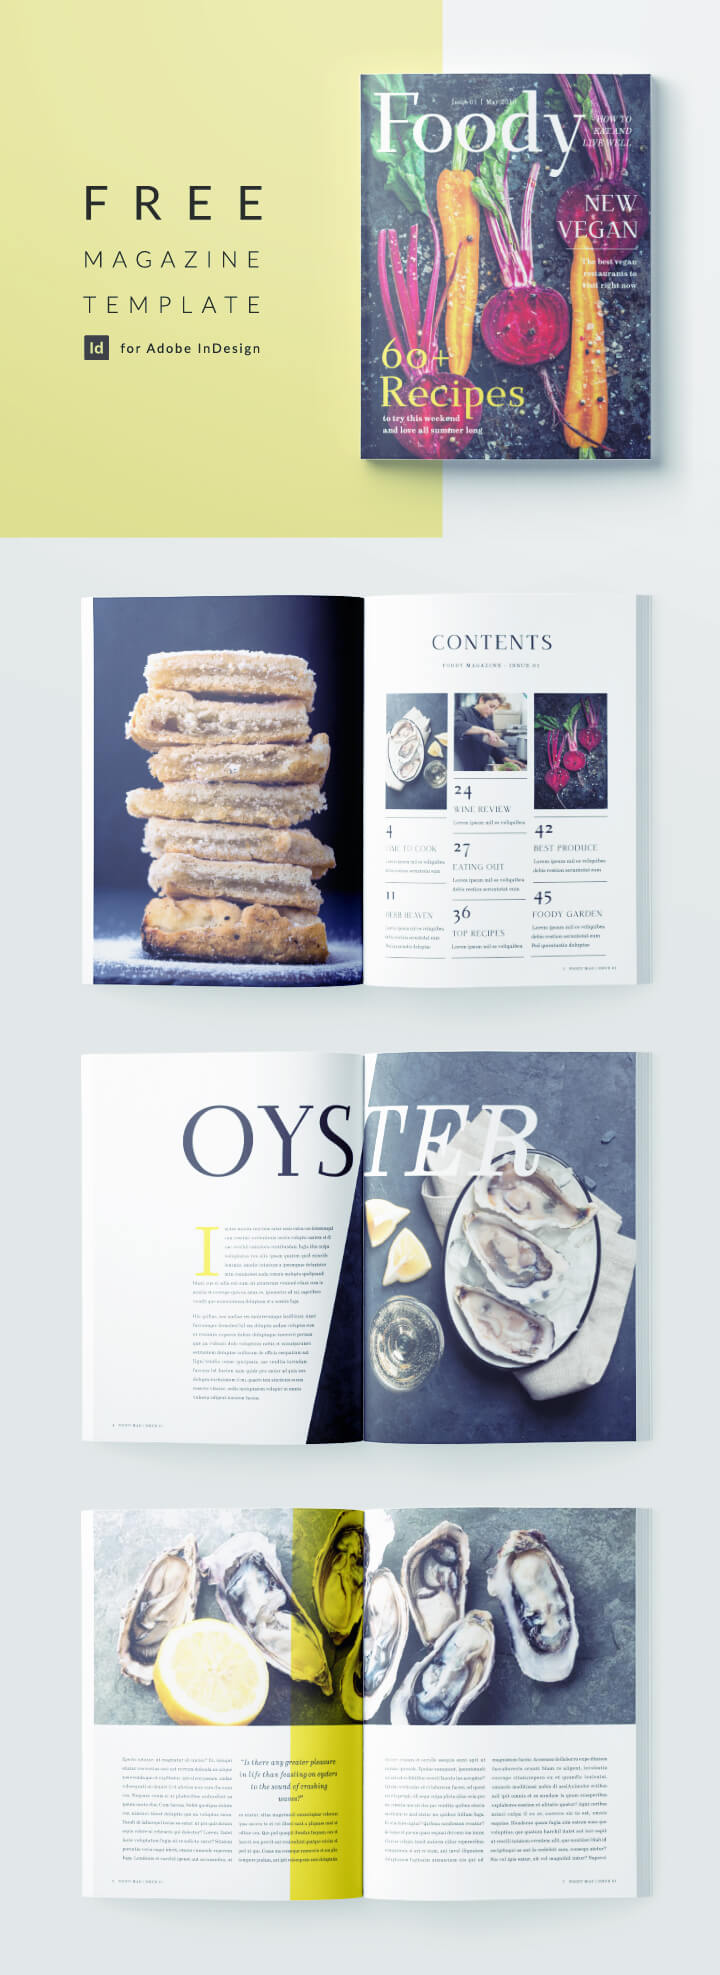 free magazine template modern food magazine 12 pages free download for indesign